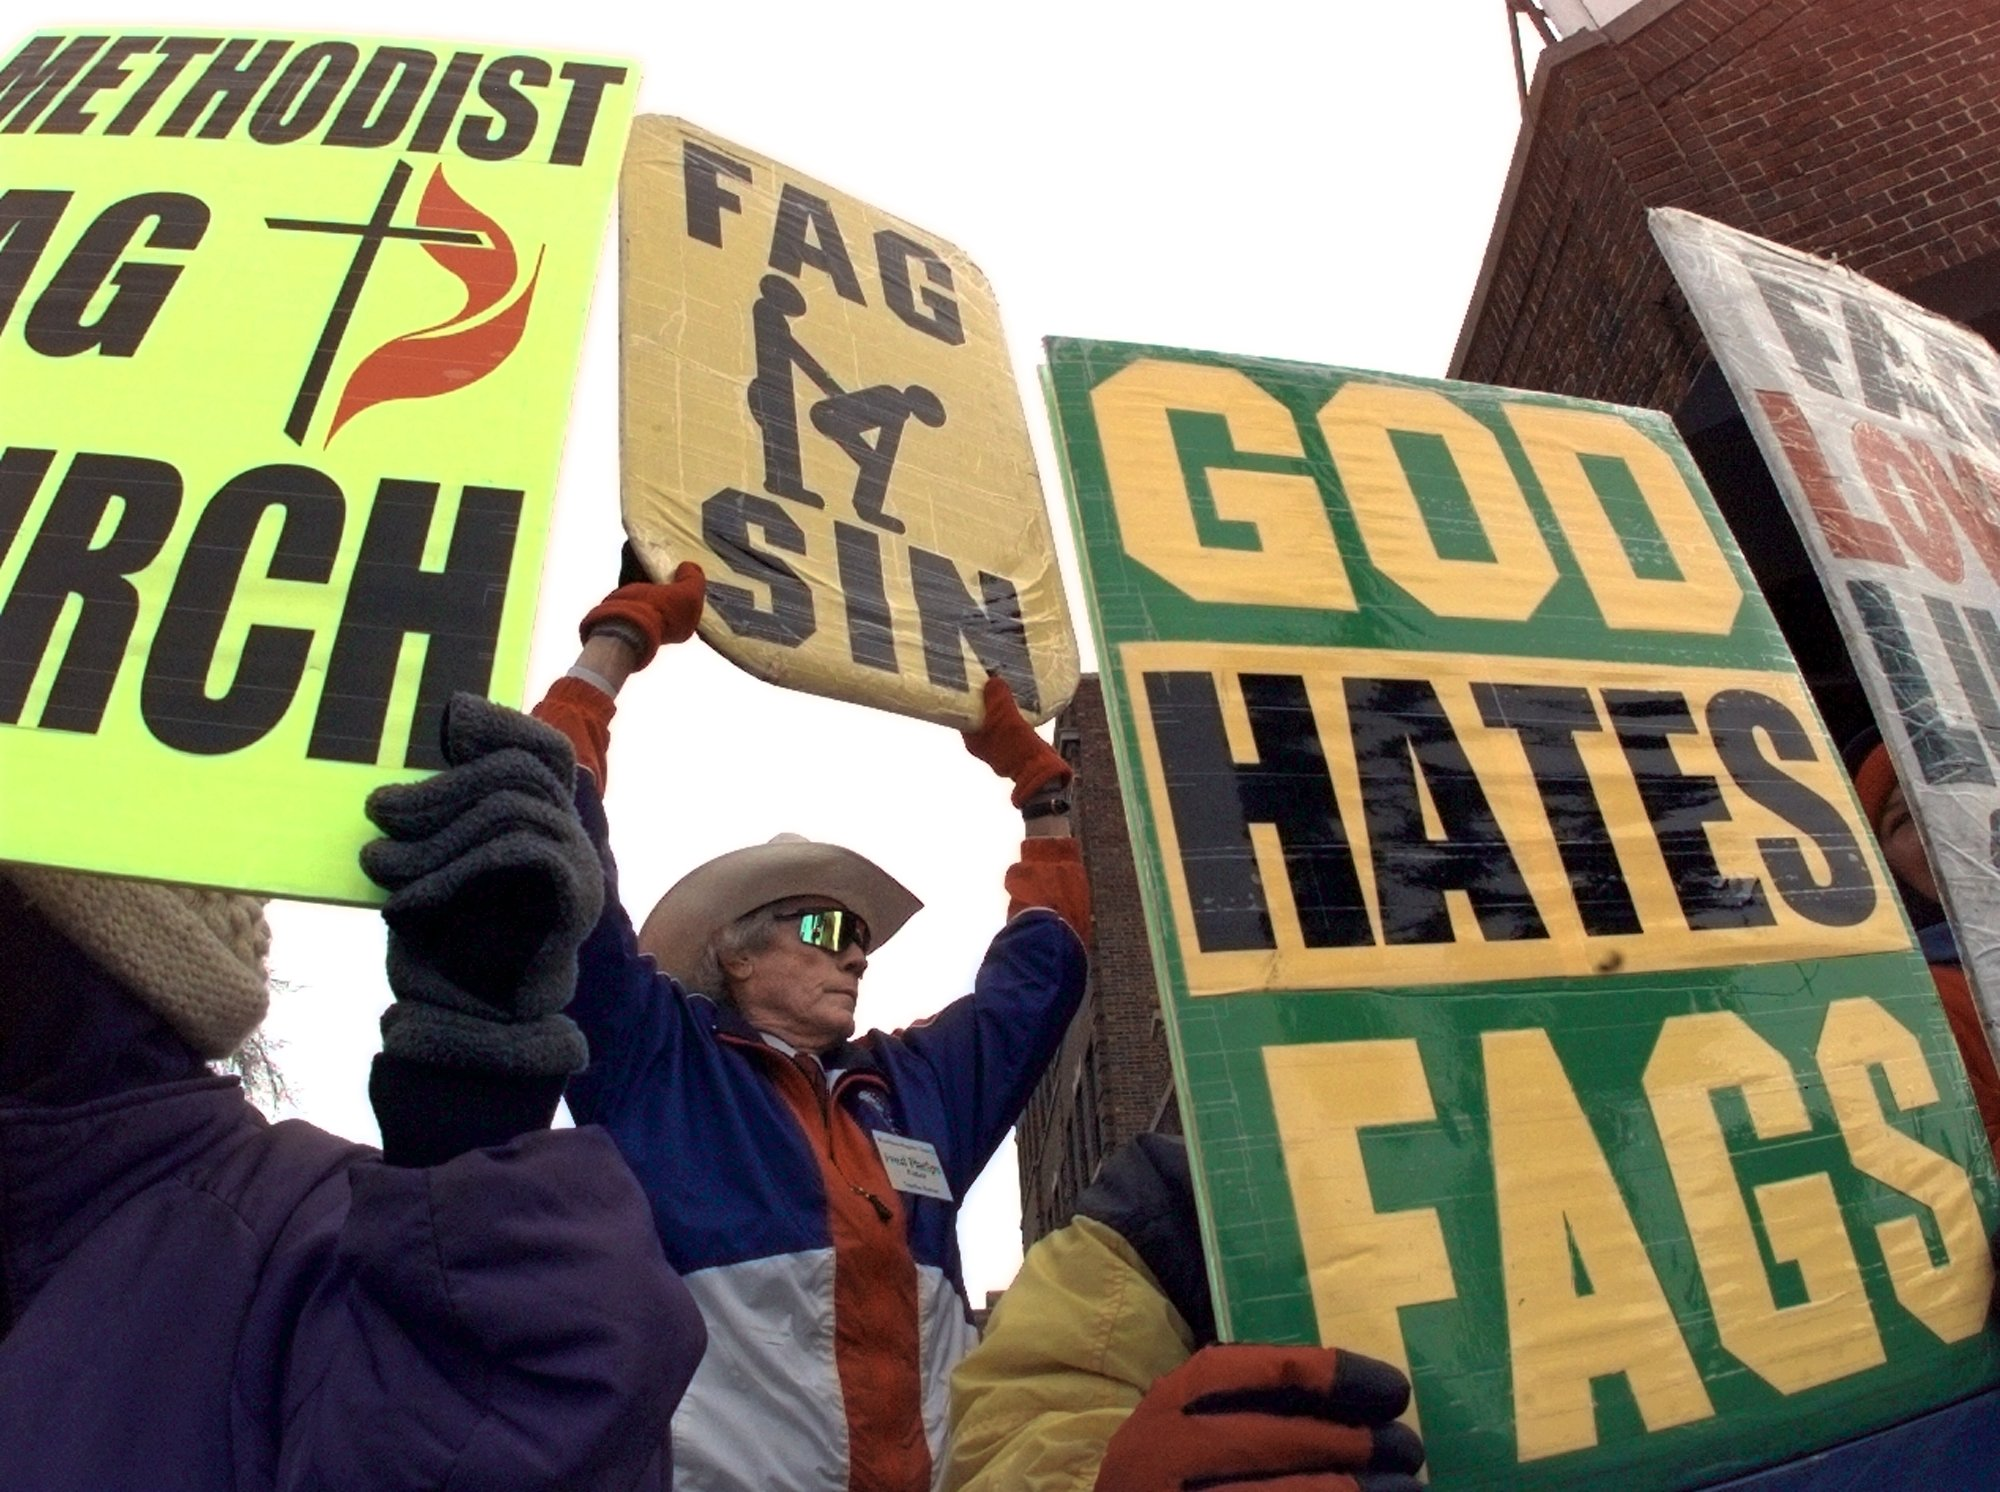 Rev. Fred Phelps from the Westboro Baptist Church of Topeka, Kansas holds a 'God Hates Fags' sign